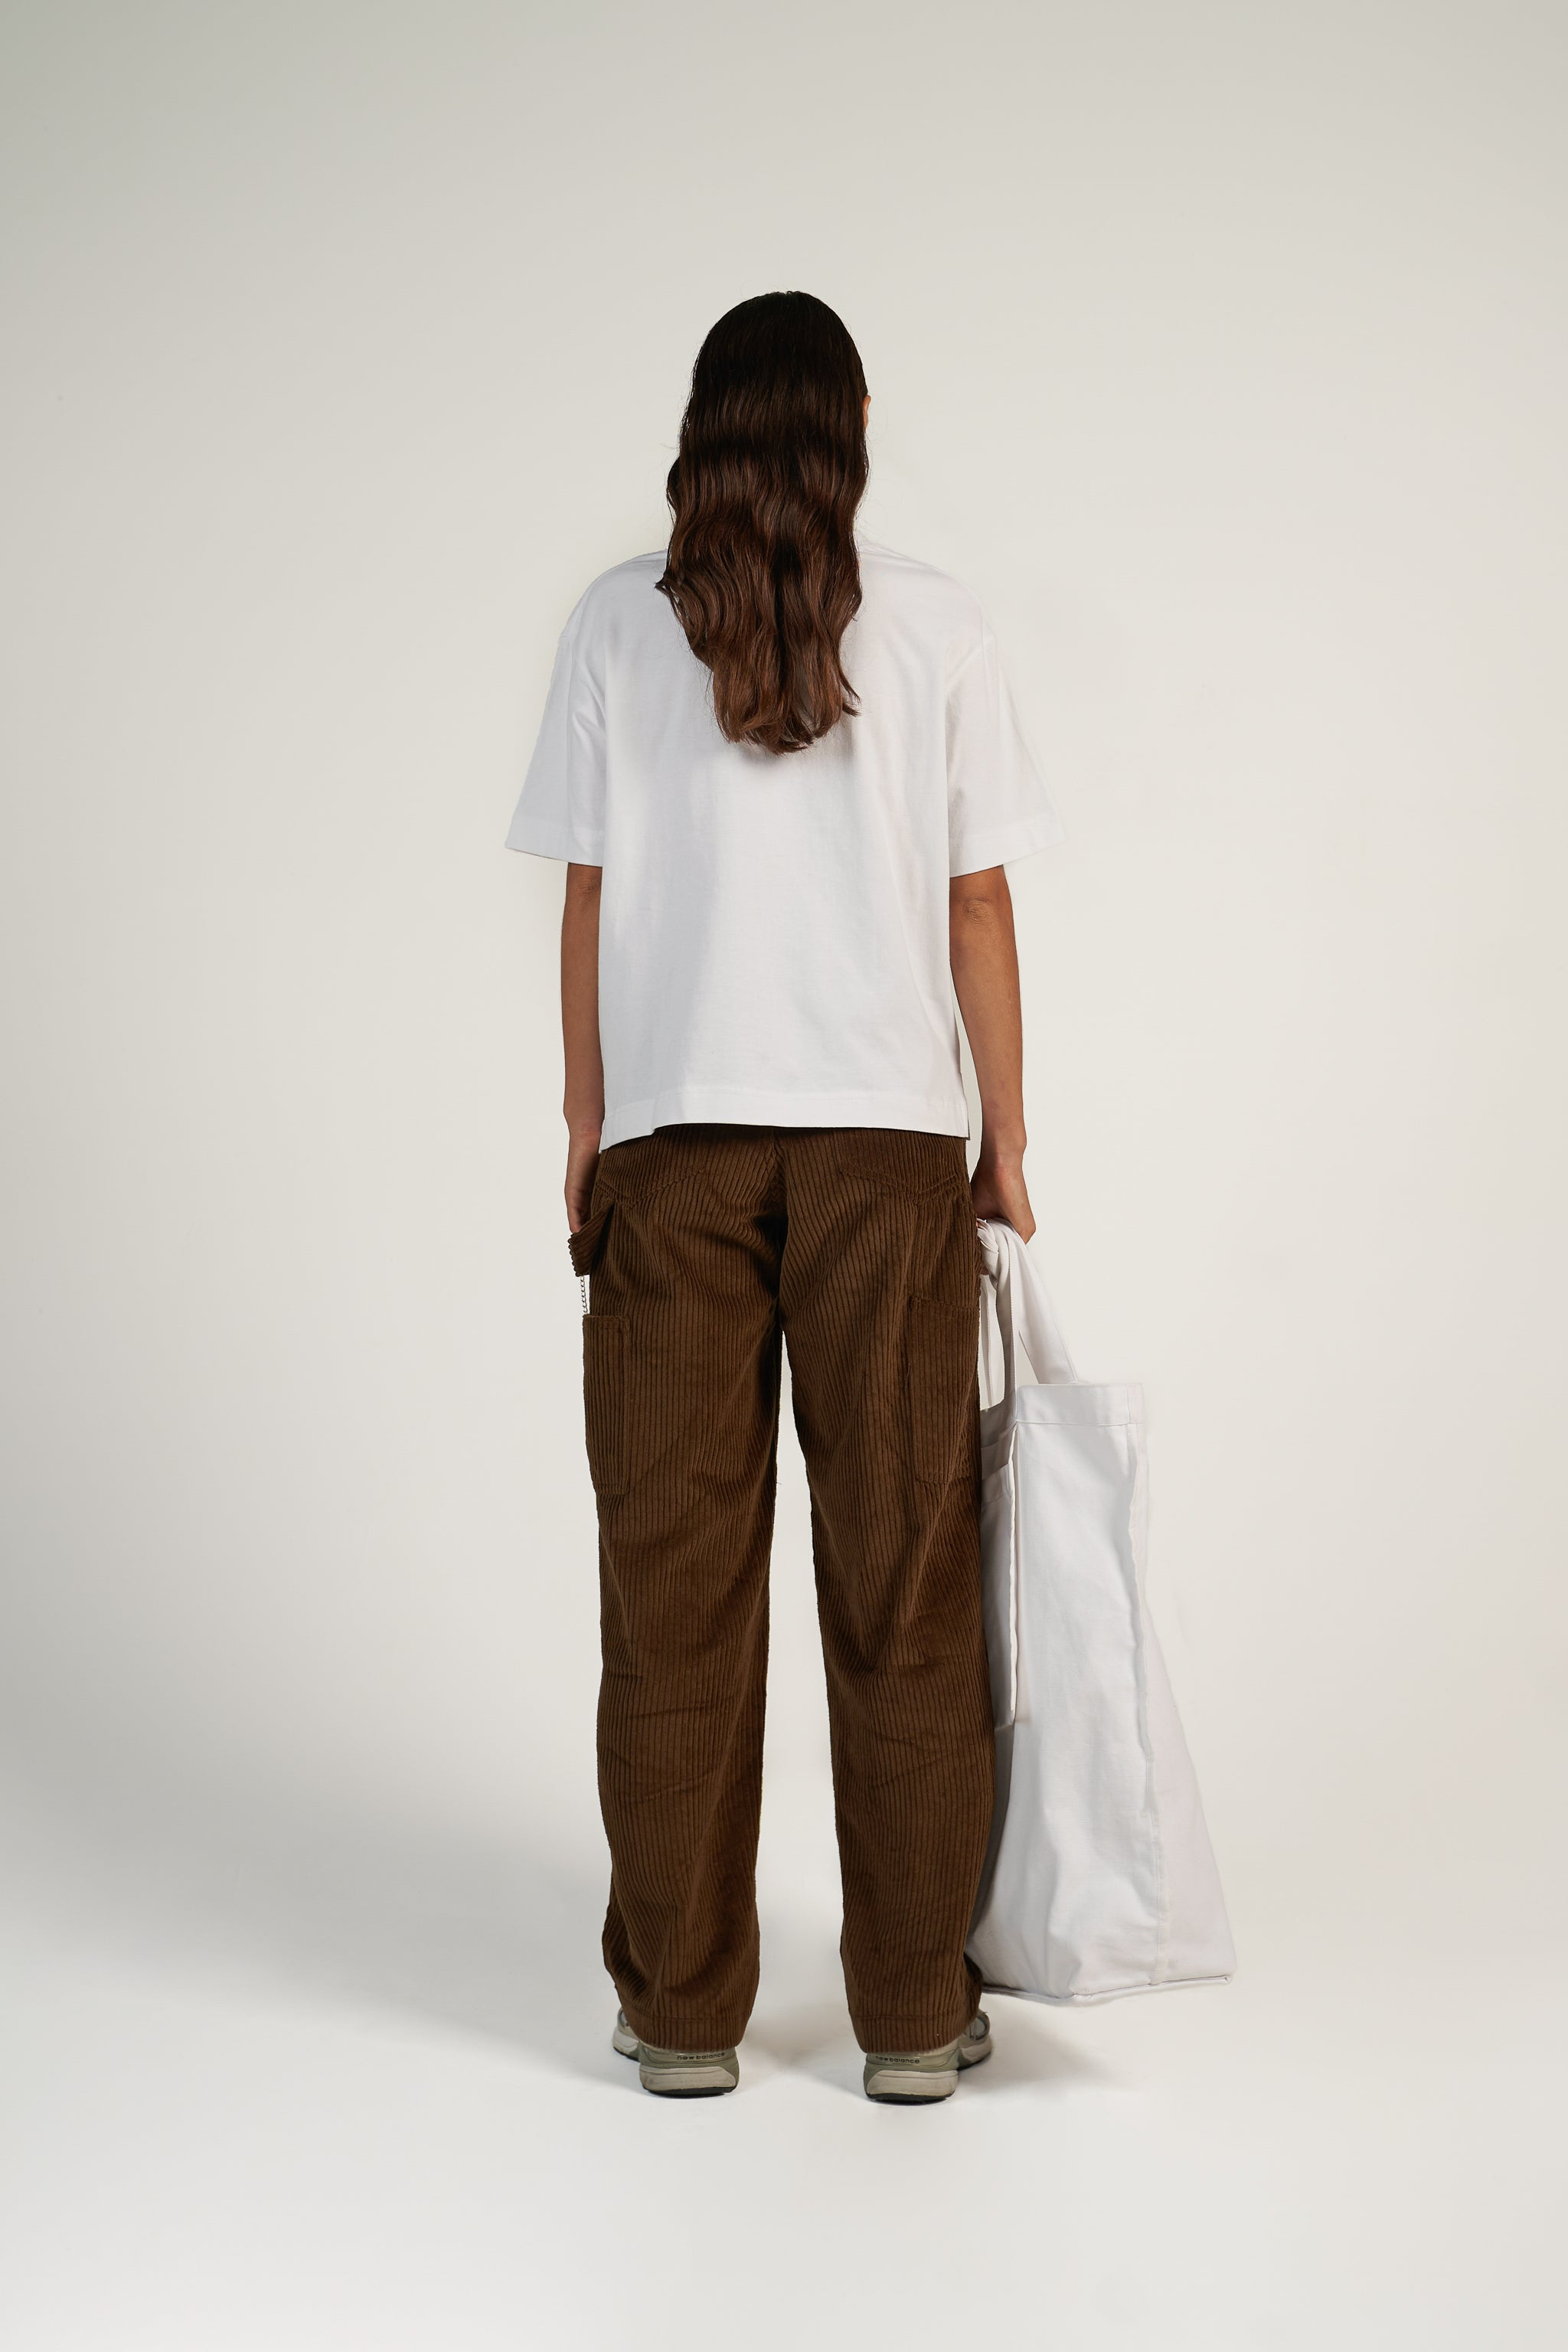 RELAXED WORKER PANT in Choccy